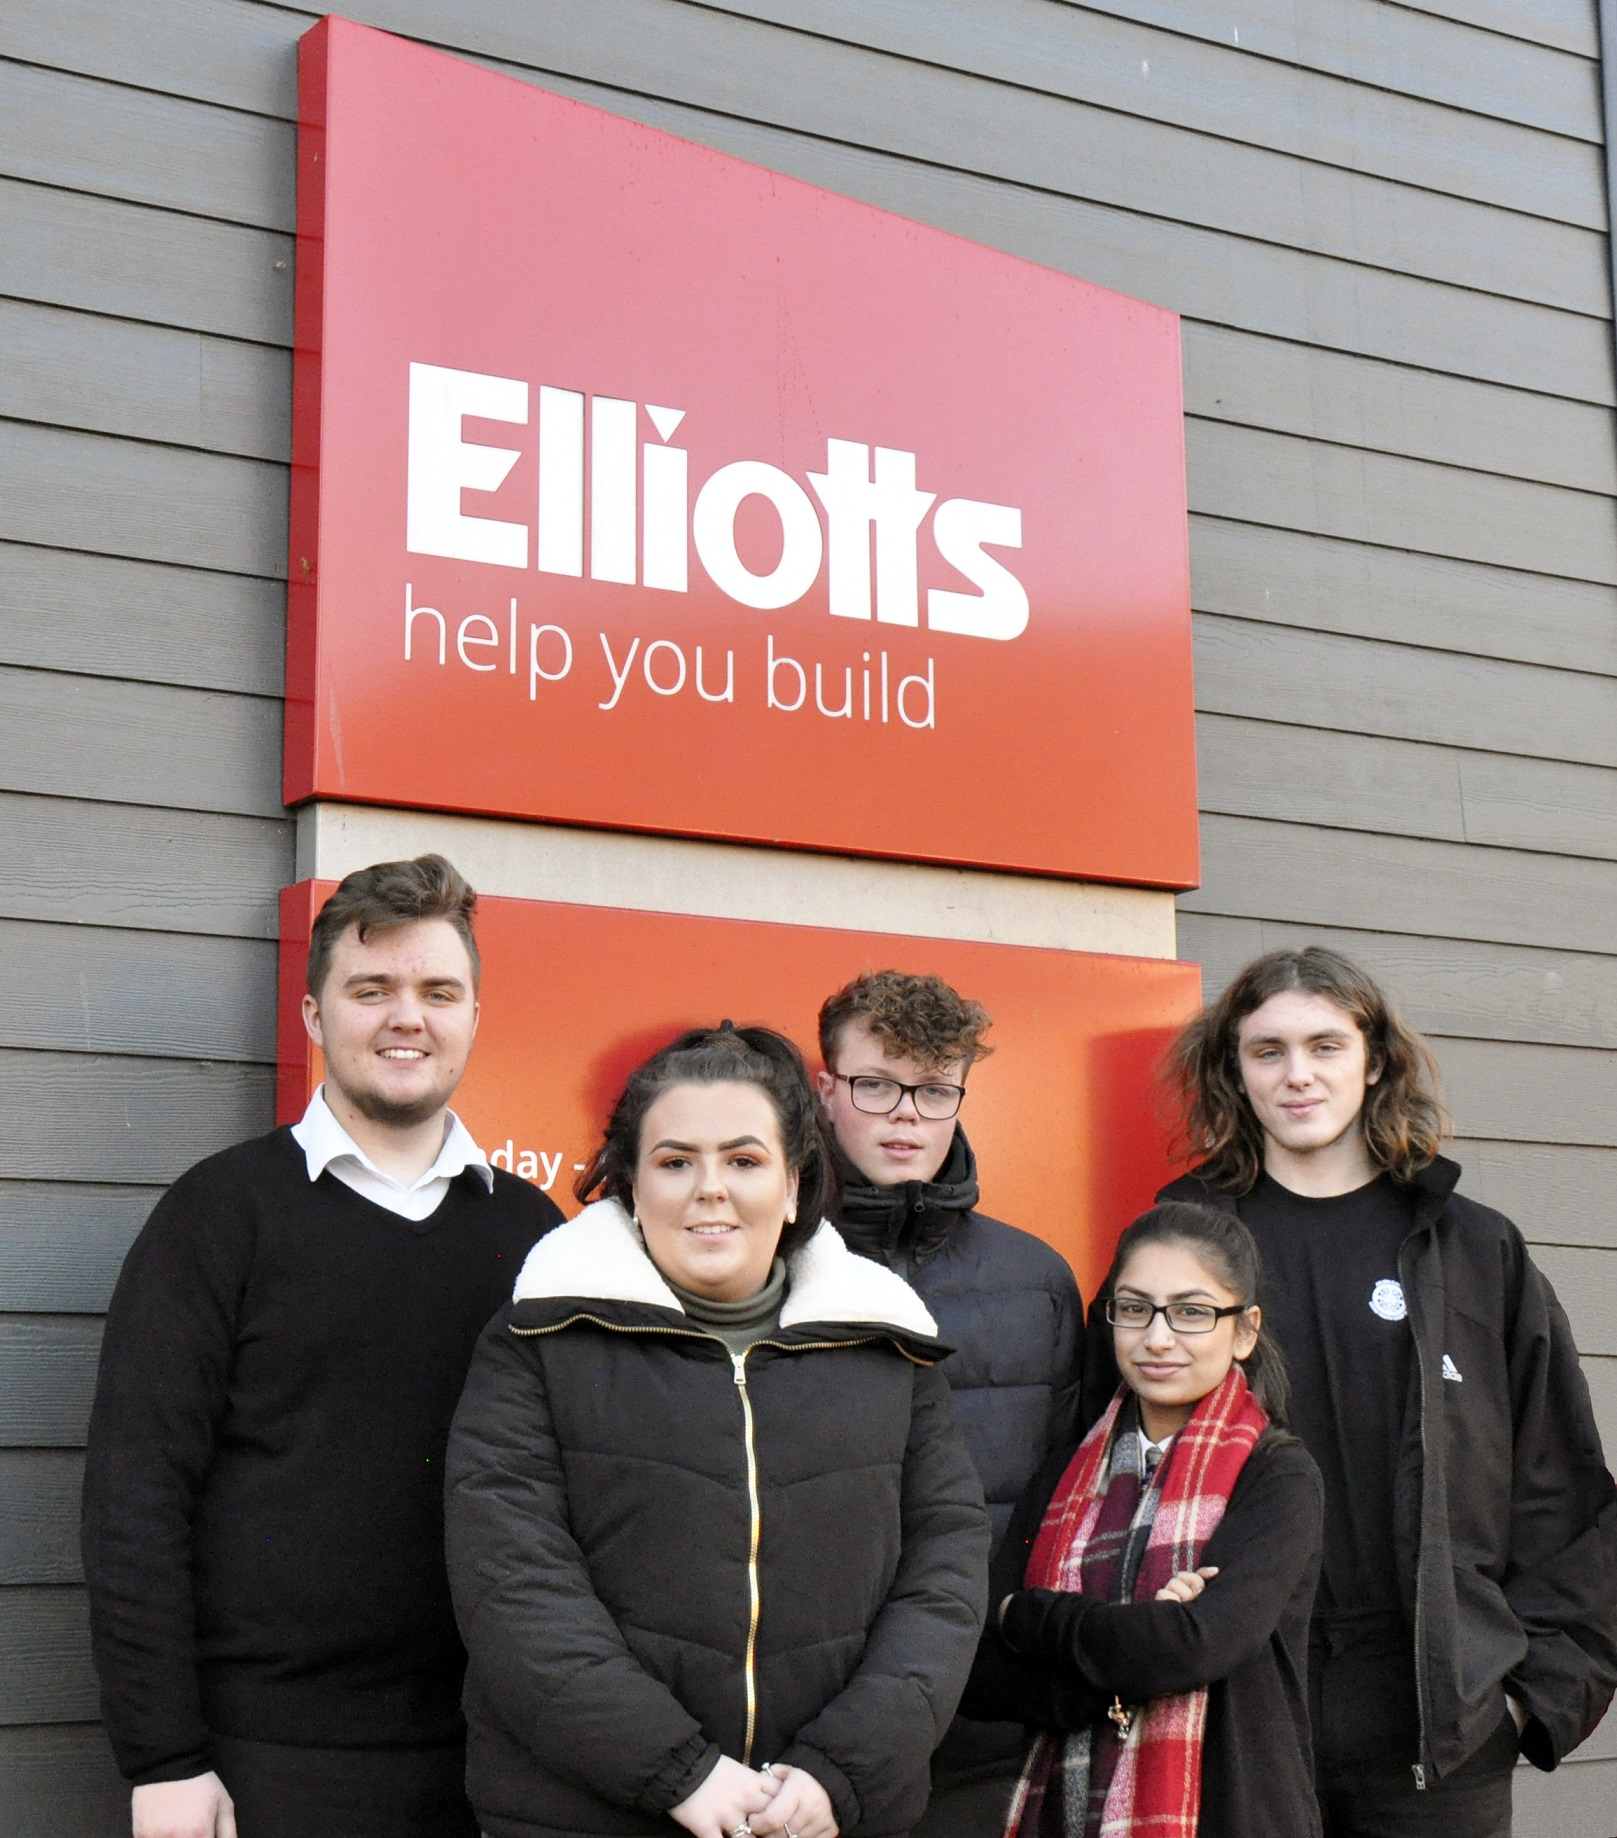 Five of the six new apprentices, from left to right: Jack Arnold – Ringwood & Fordingbridge, Mollie Oram – Tadley, Jack Bailey – Southampton, Karamjit Potiwal – Southampton Sales Hub and Calum Budge – Romsey